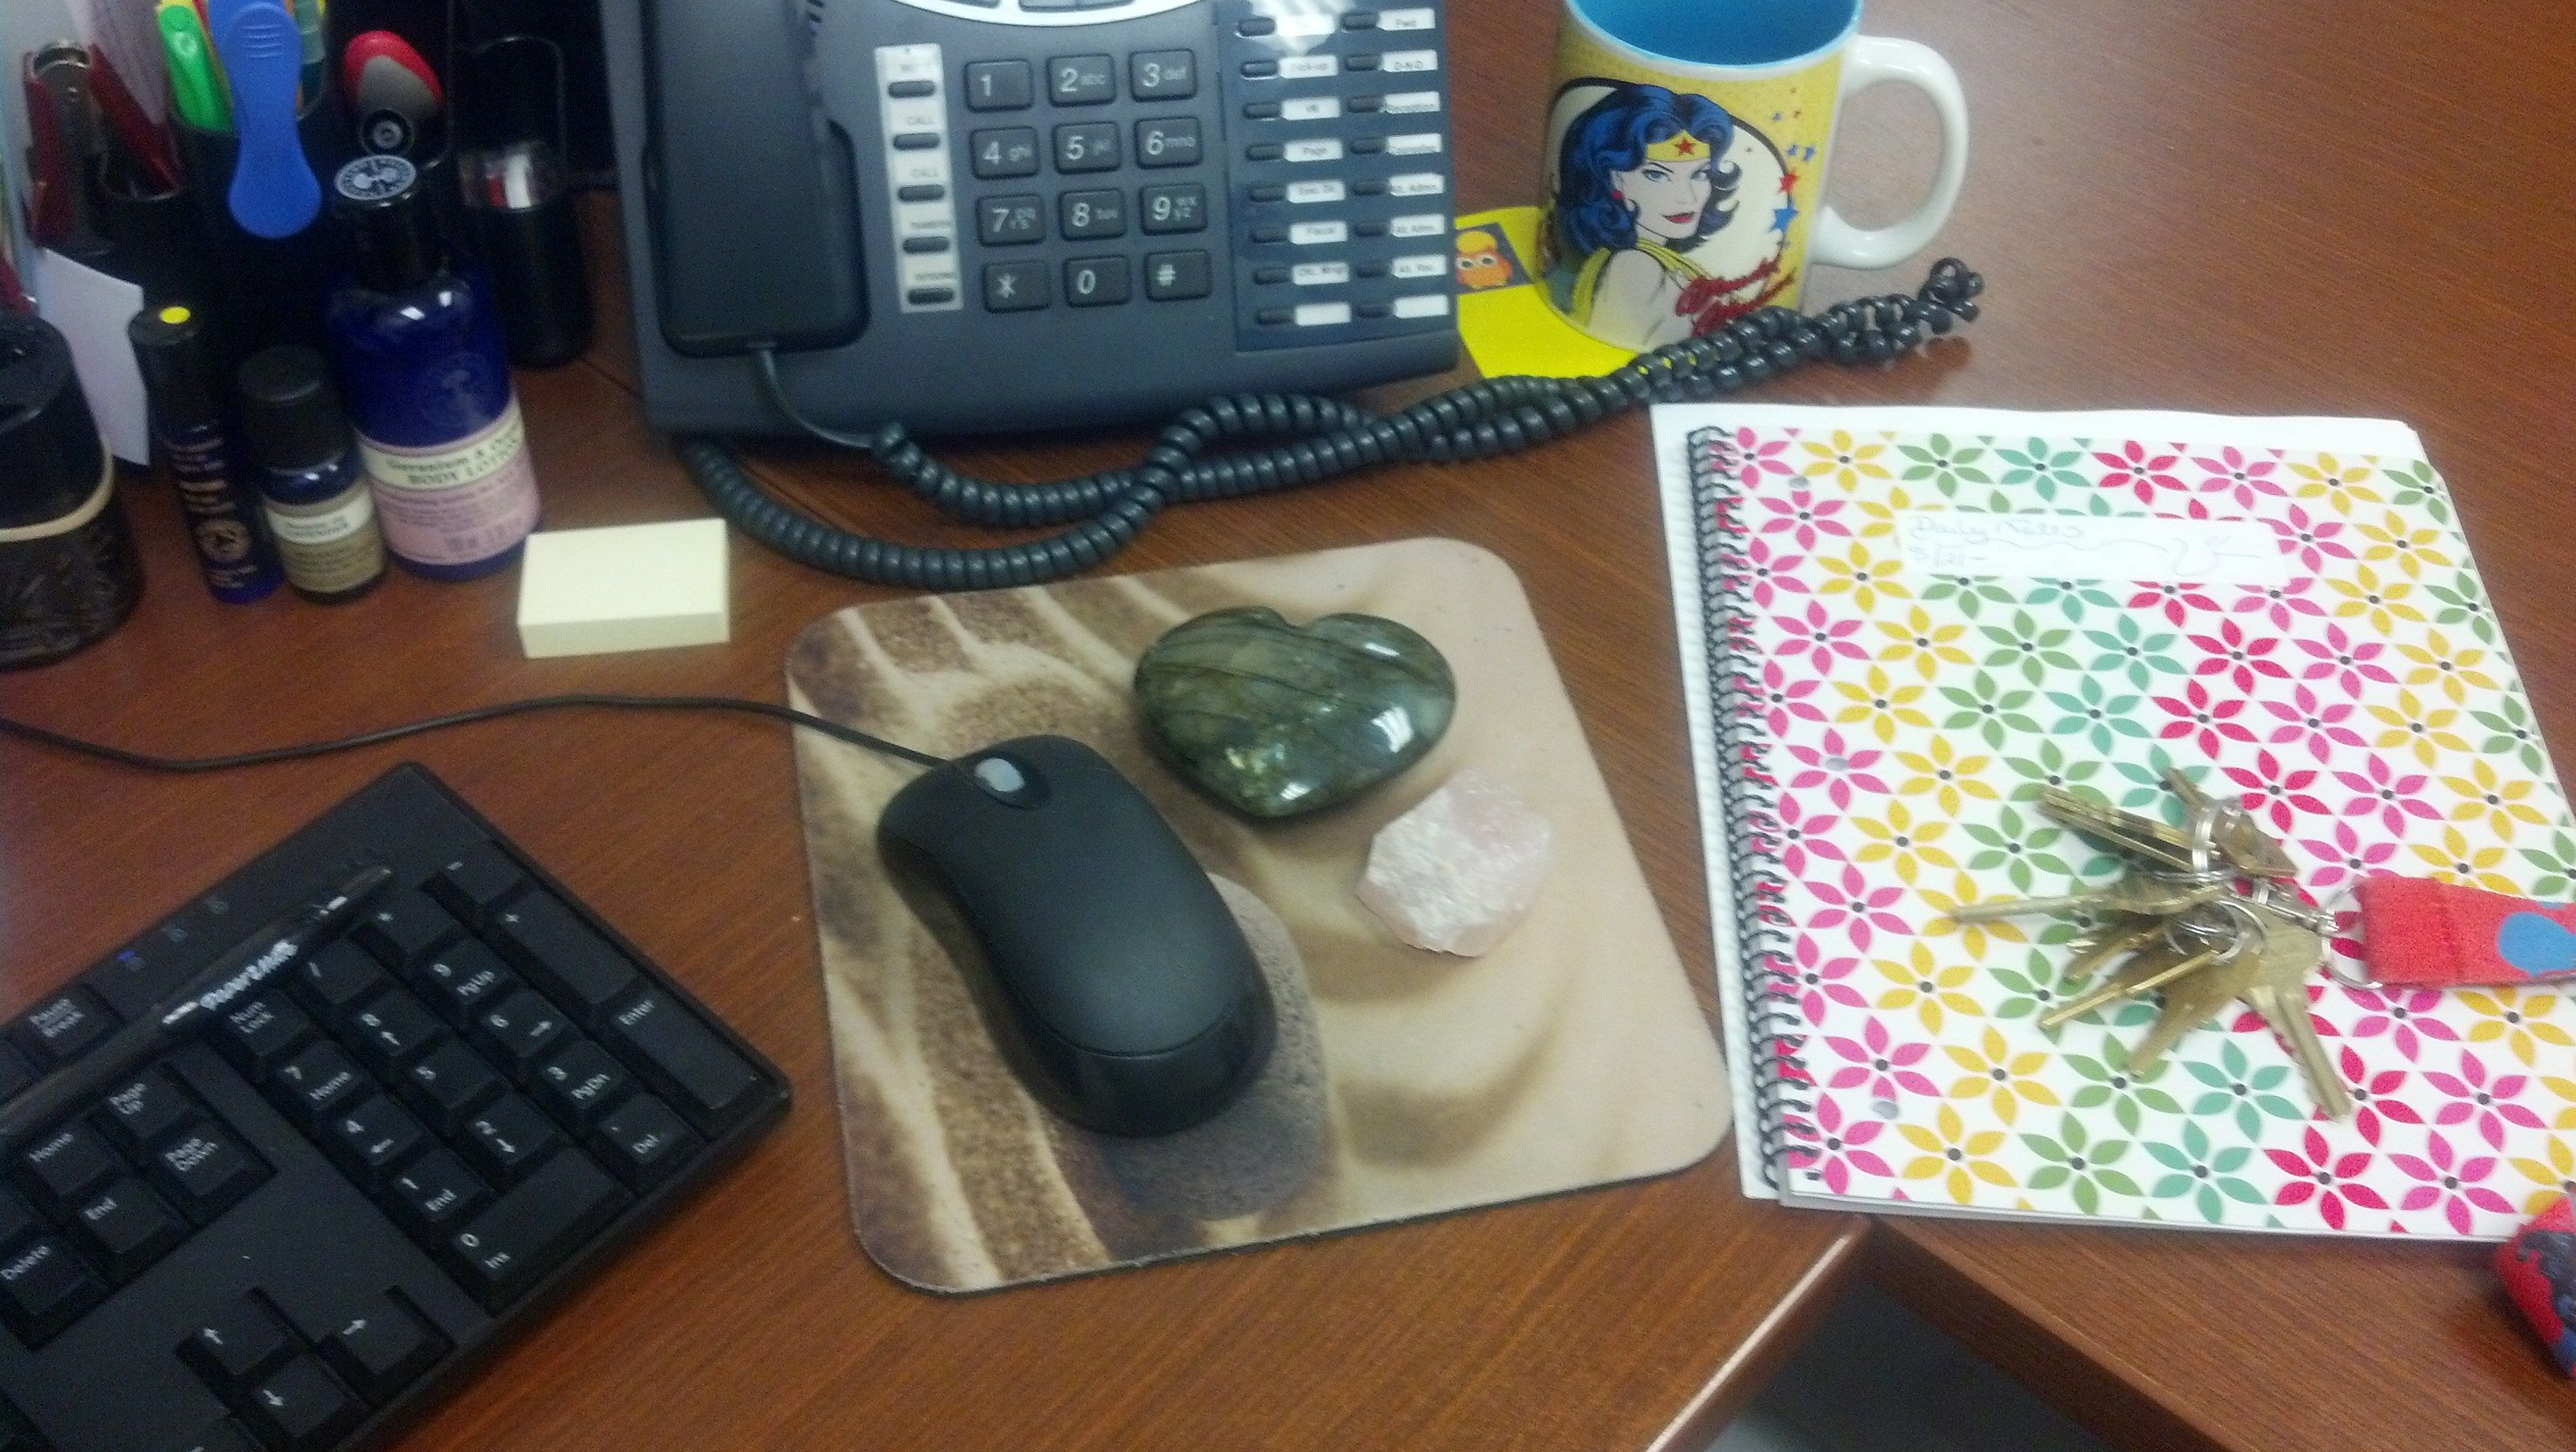 Use Crystal Lovelies by your electronic devices to help protect you from their negative electromagnetic pollution.